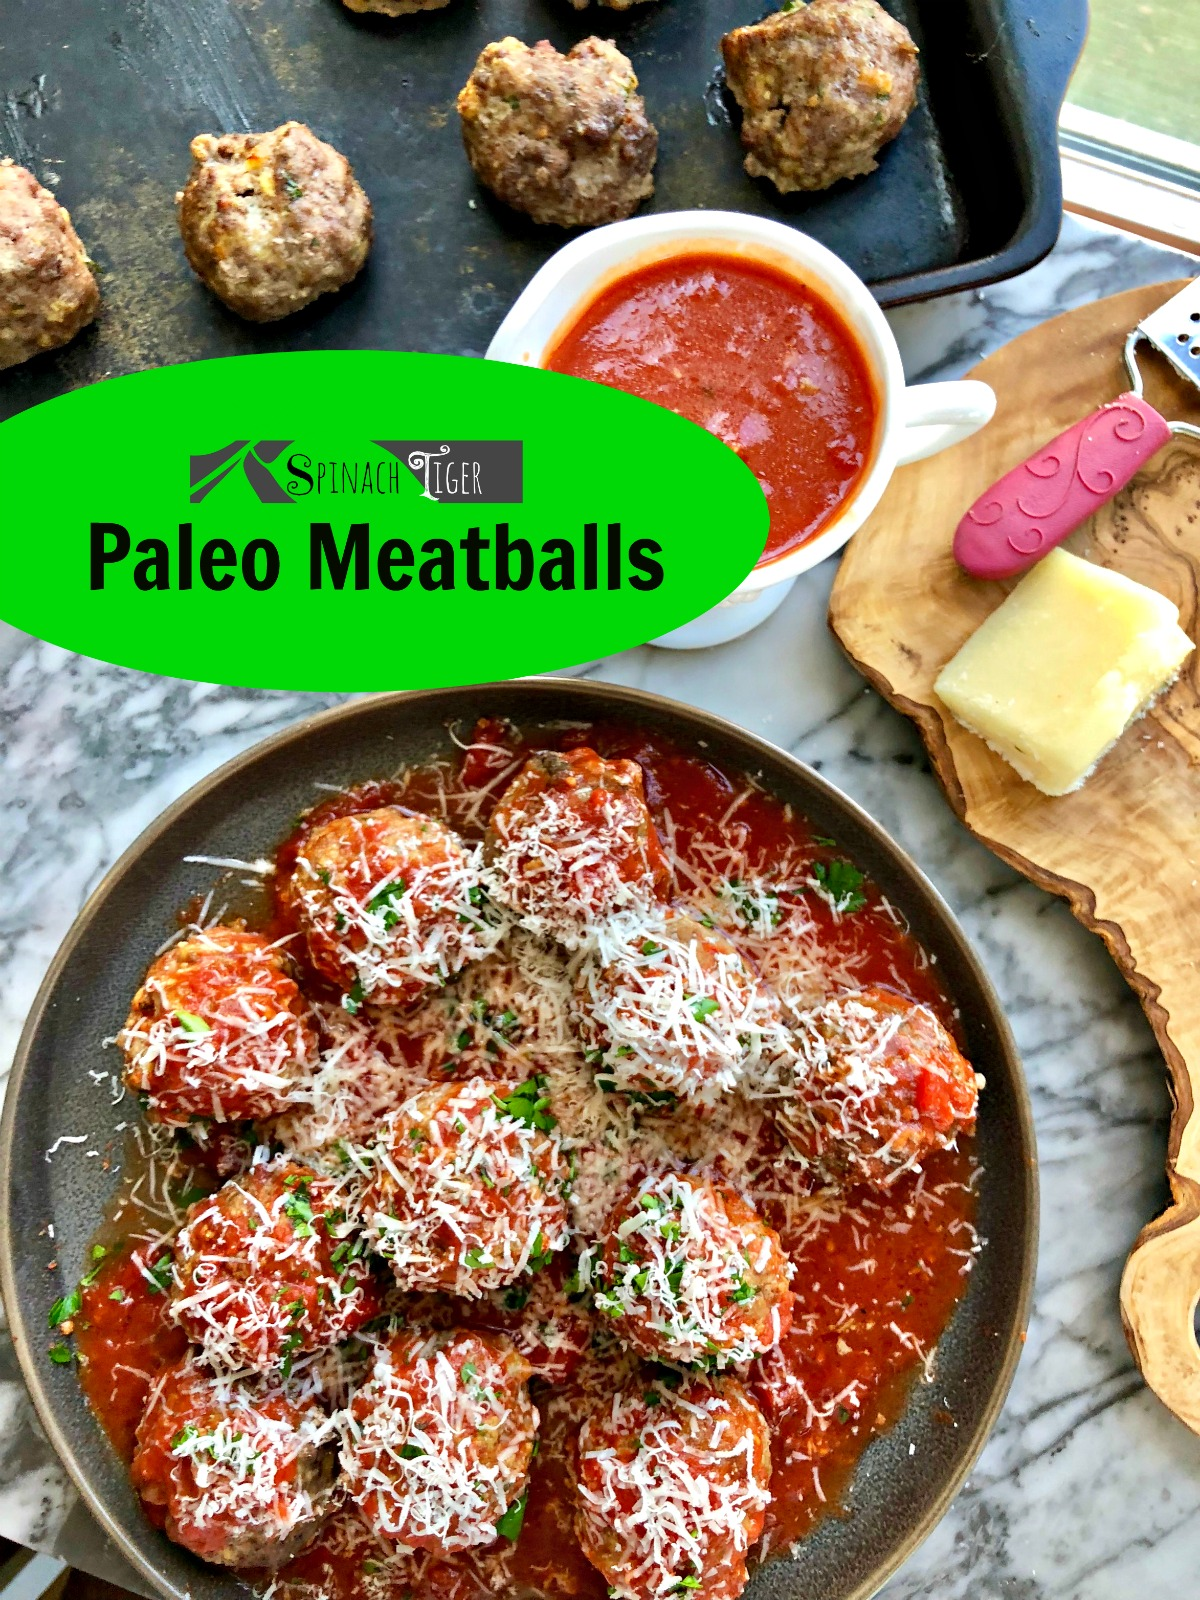 Paleo Meatballs with Ground Beef from Spinach TIger